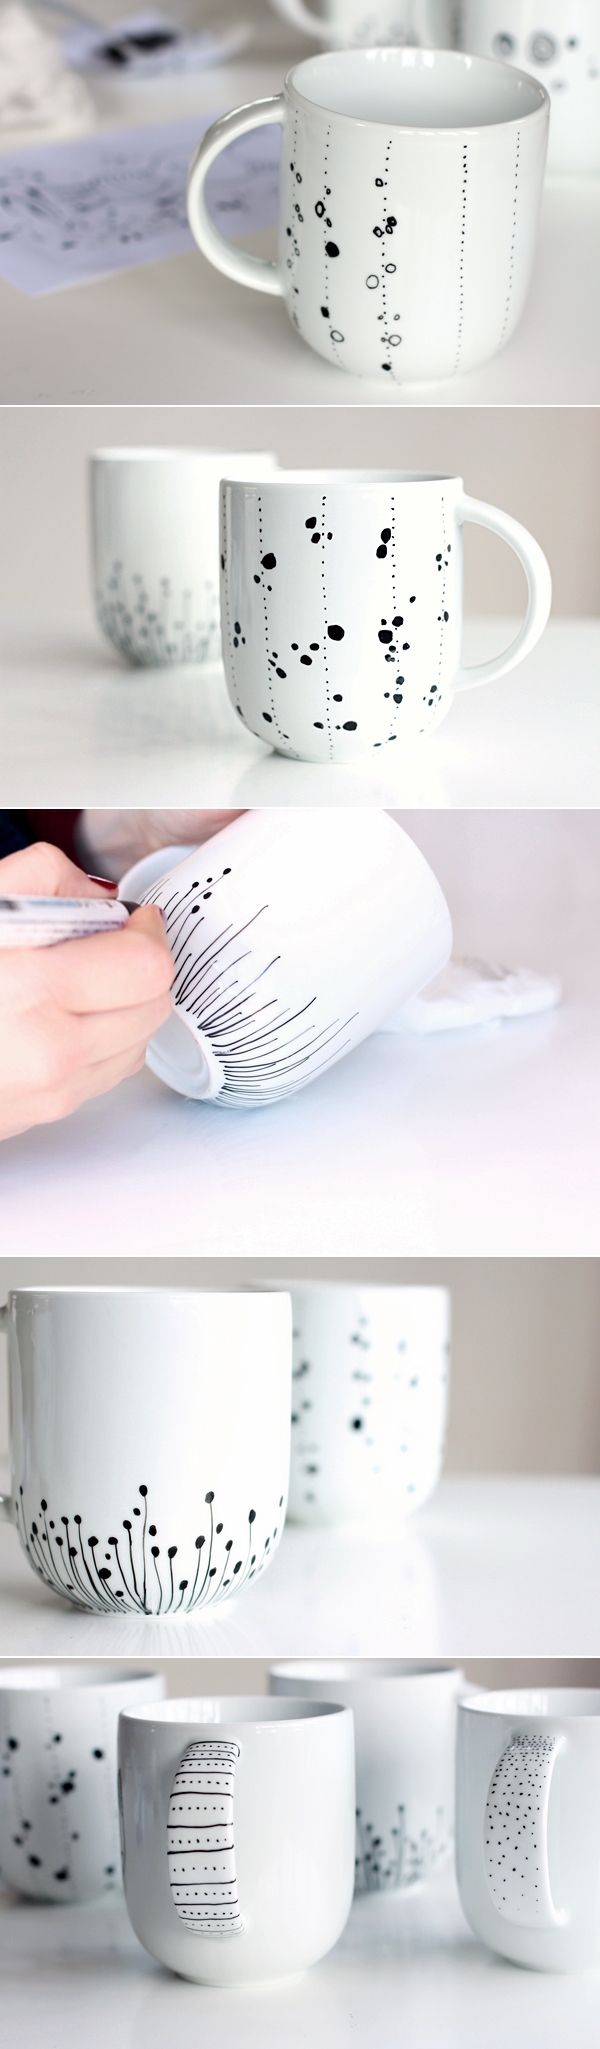 how to decorate a coffee mug using a porcelain marker - Coffee Mug Design Ideas